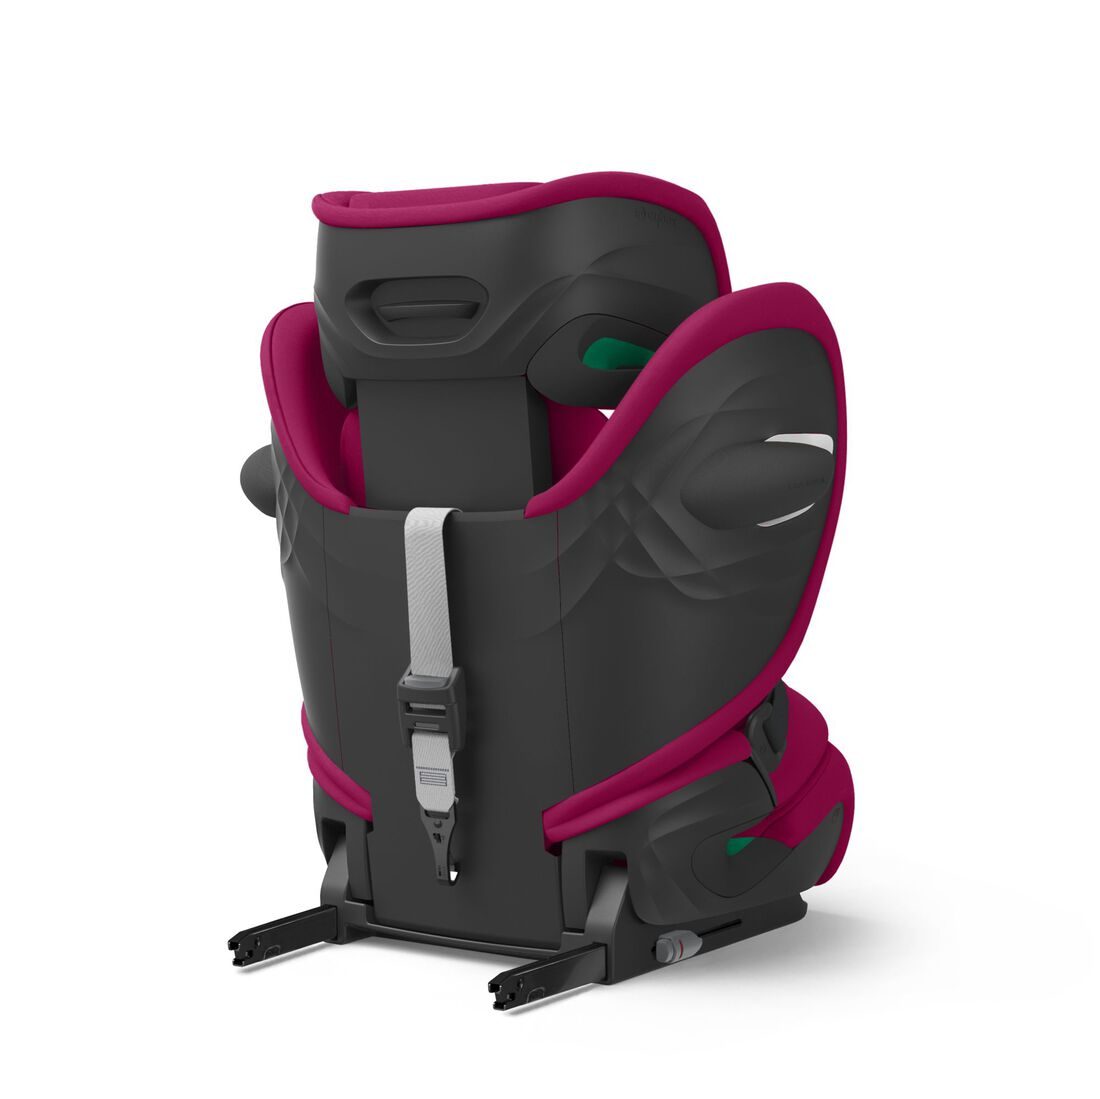 CYBEX Pallas G i-Size - Magnolia Pink in Magnolia Pink large image number 5